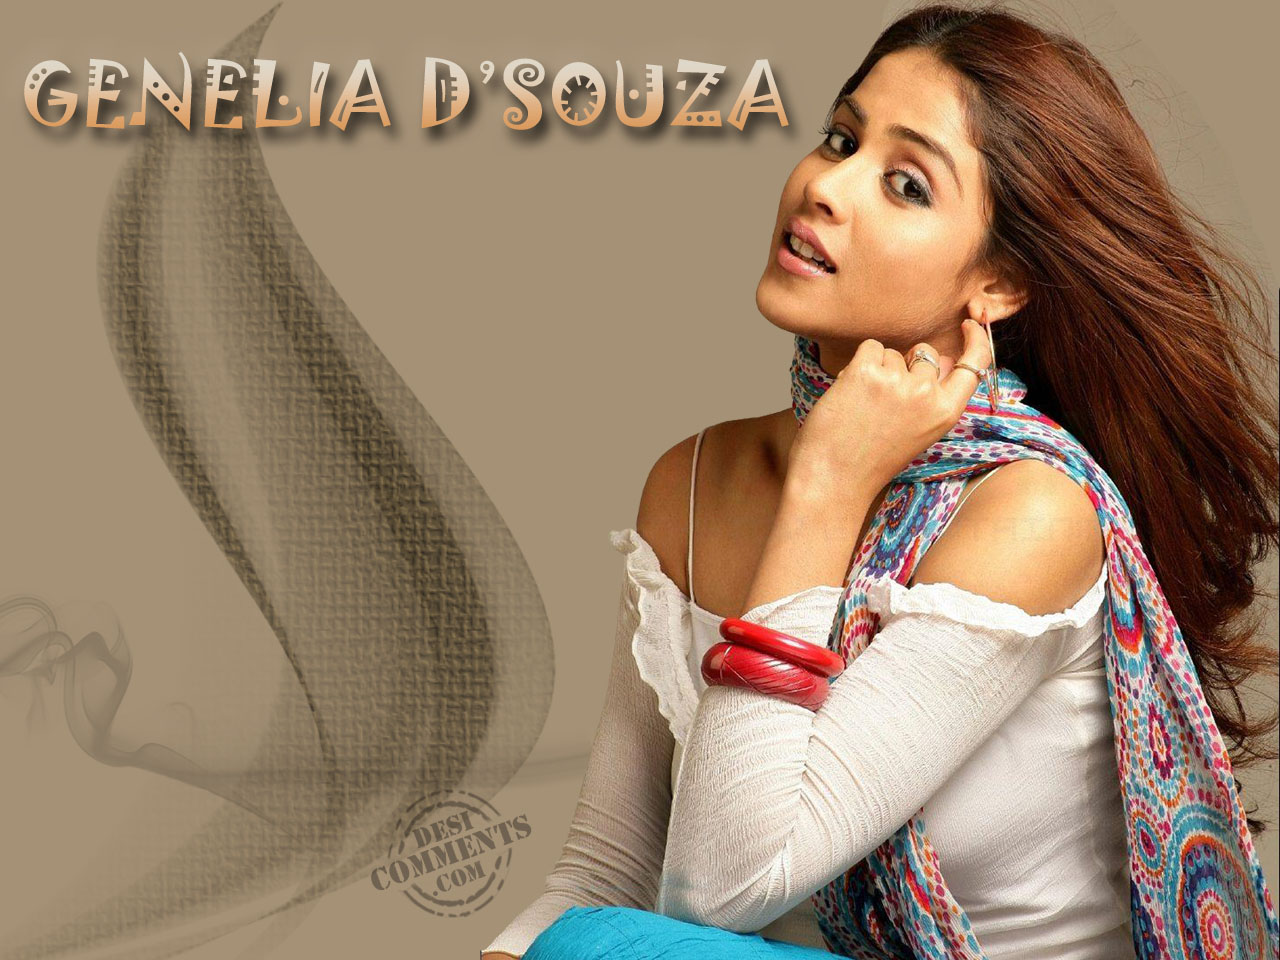 Genelia D Souza Wallpapers 30 Hd Pics: Impressive Beauty